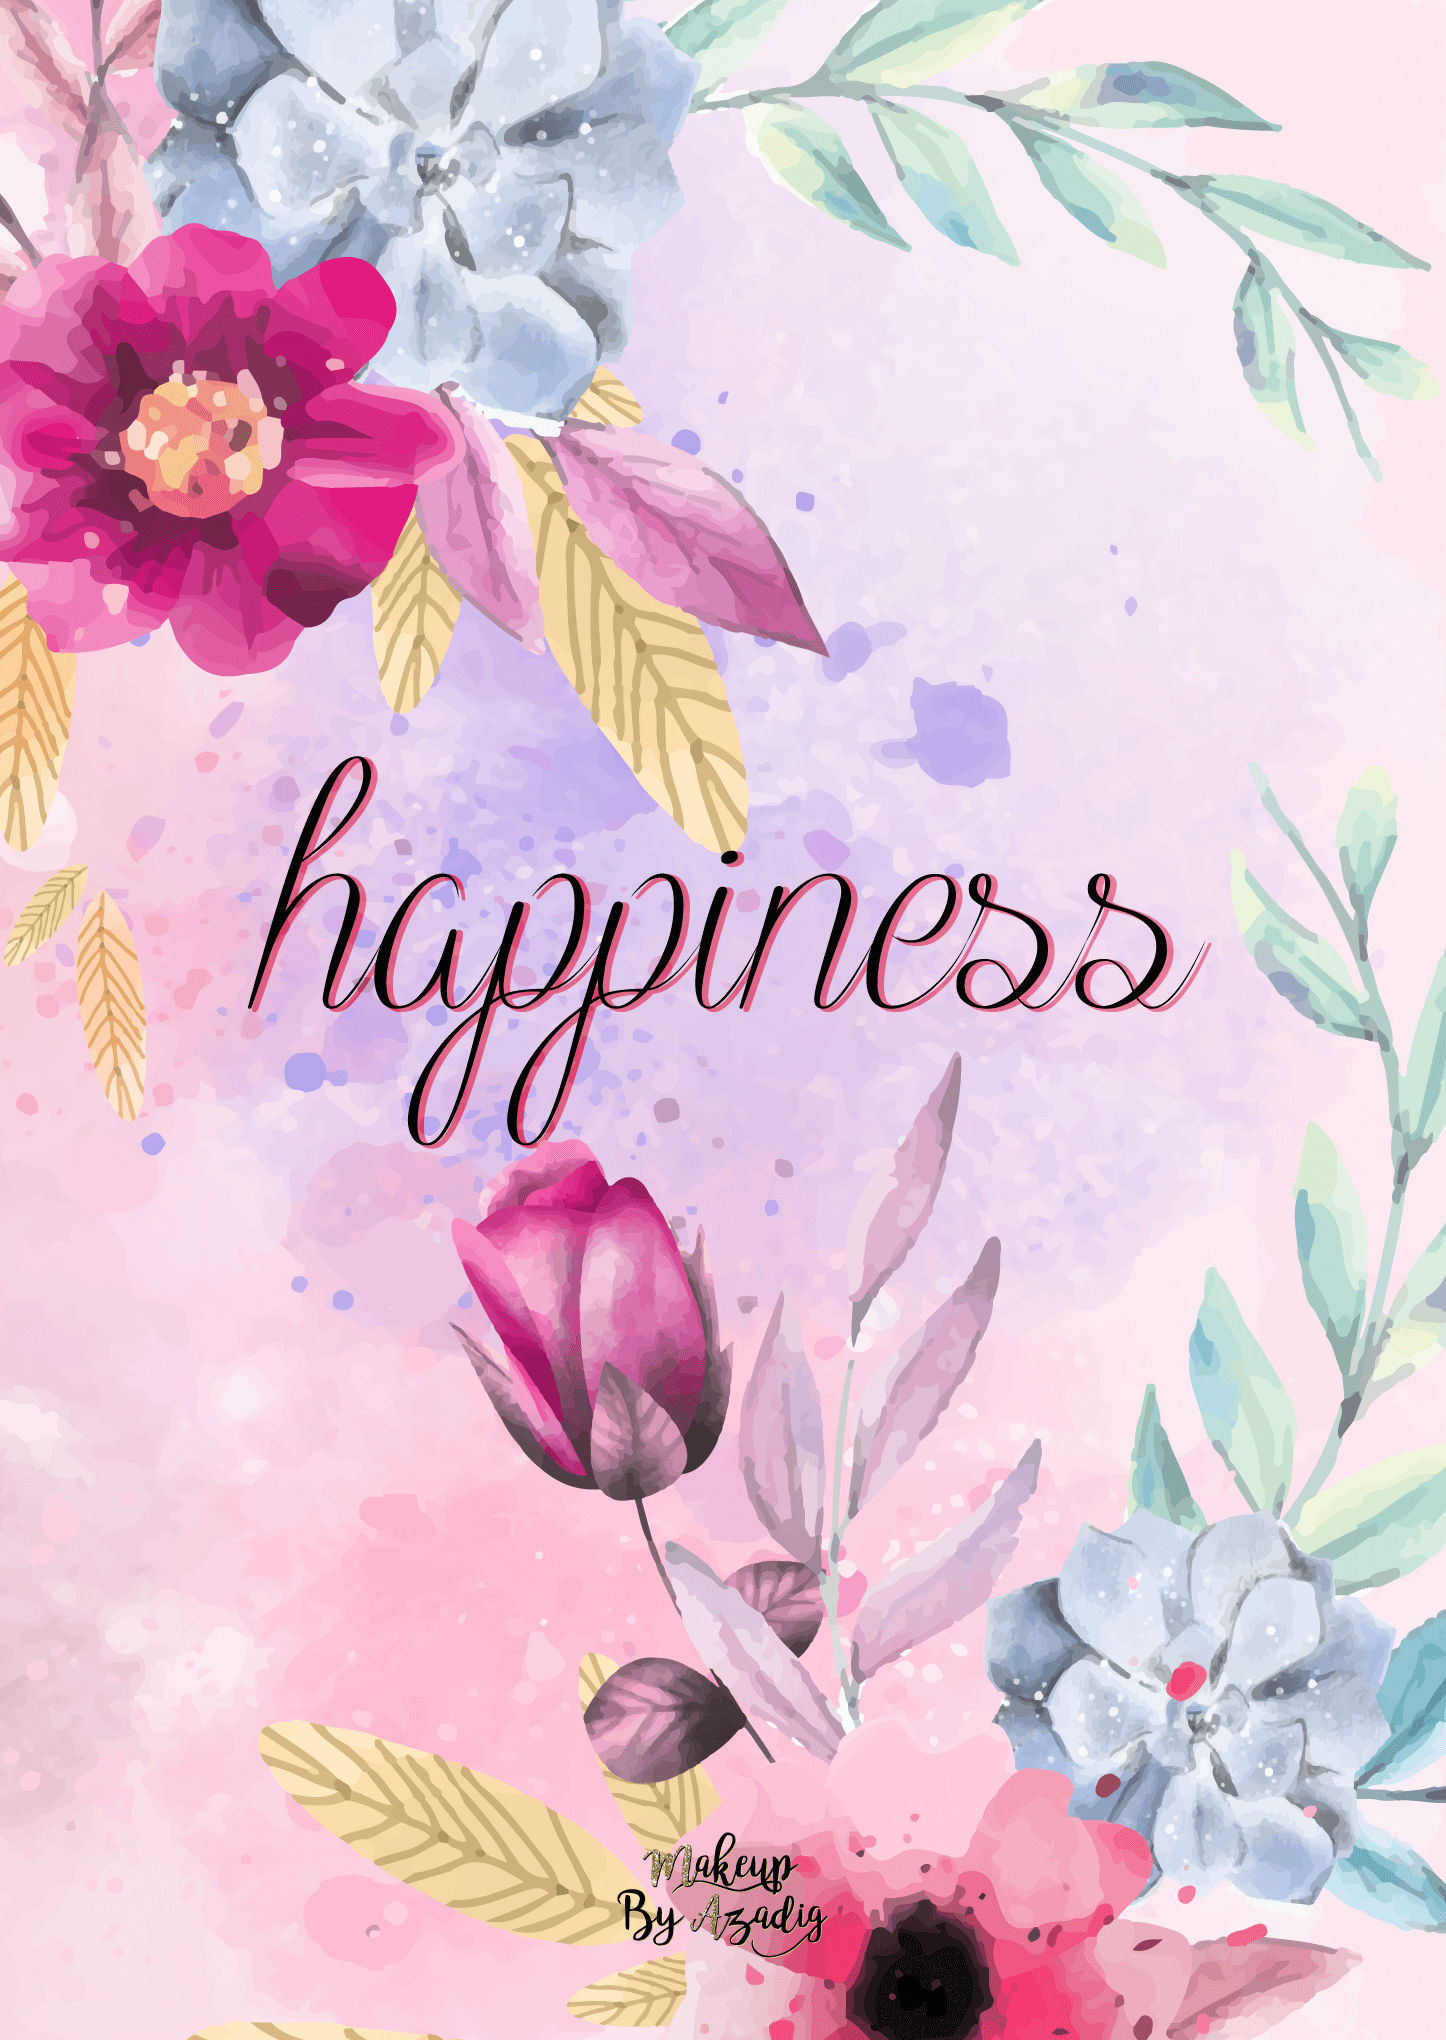 fond-decran-wallpaper-happiness-bonheur-joie-ipad-tablette-apple-makeupbyazadig-tendance